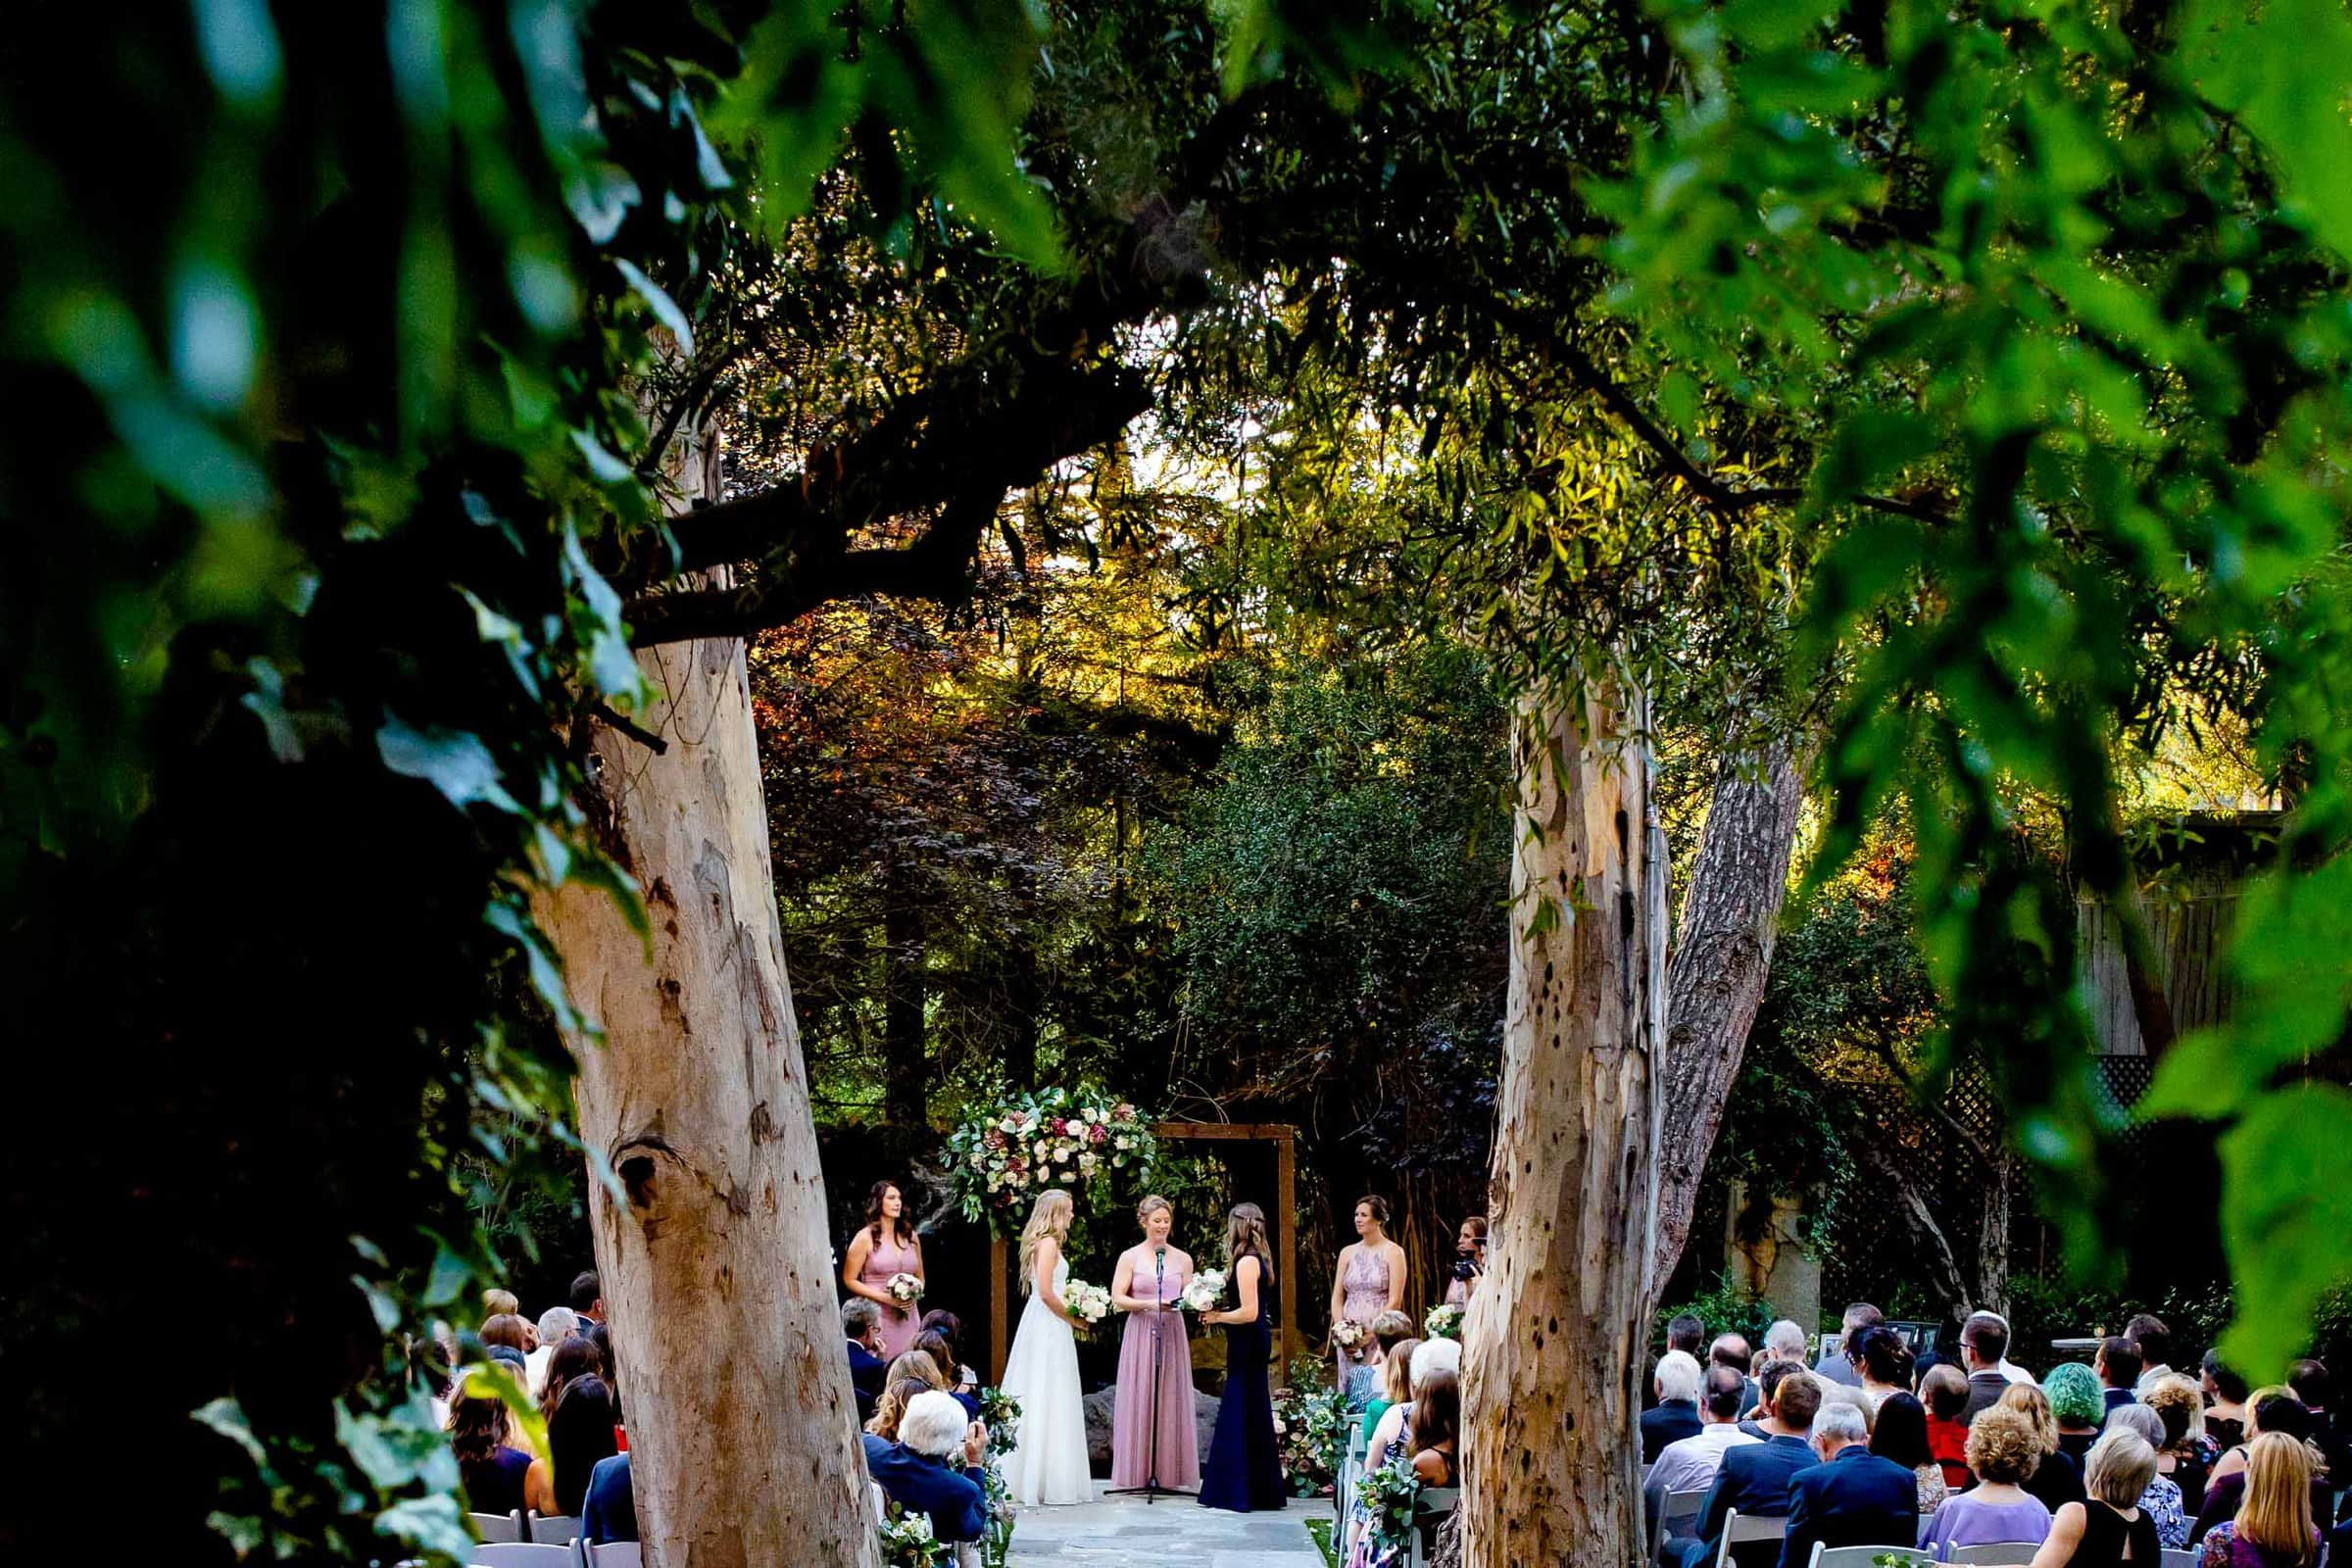 Two brides getting married in Malibu California during their Calamigos Ranch Wedding